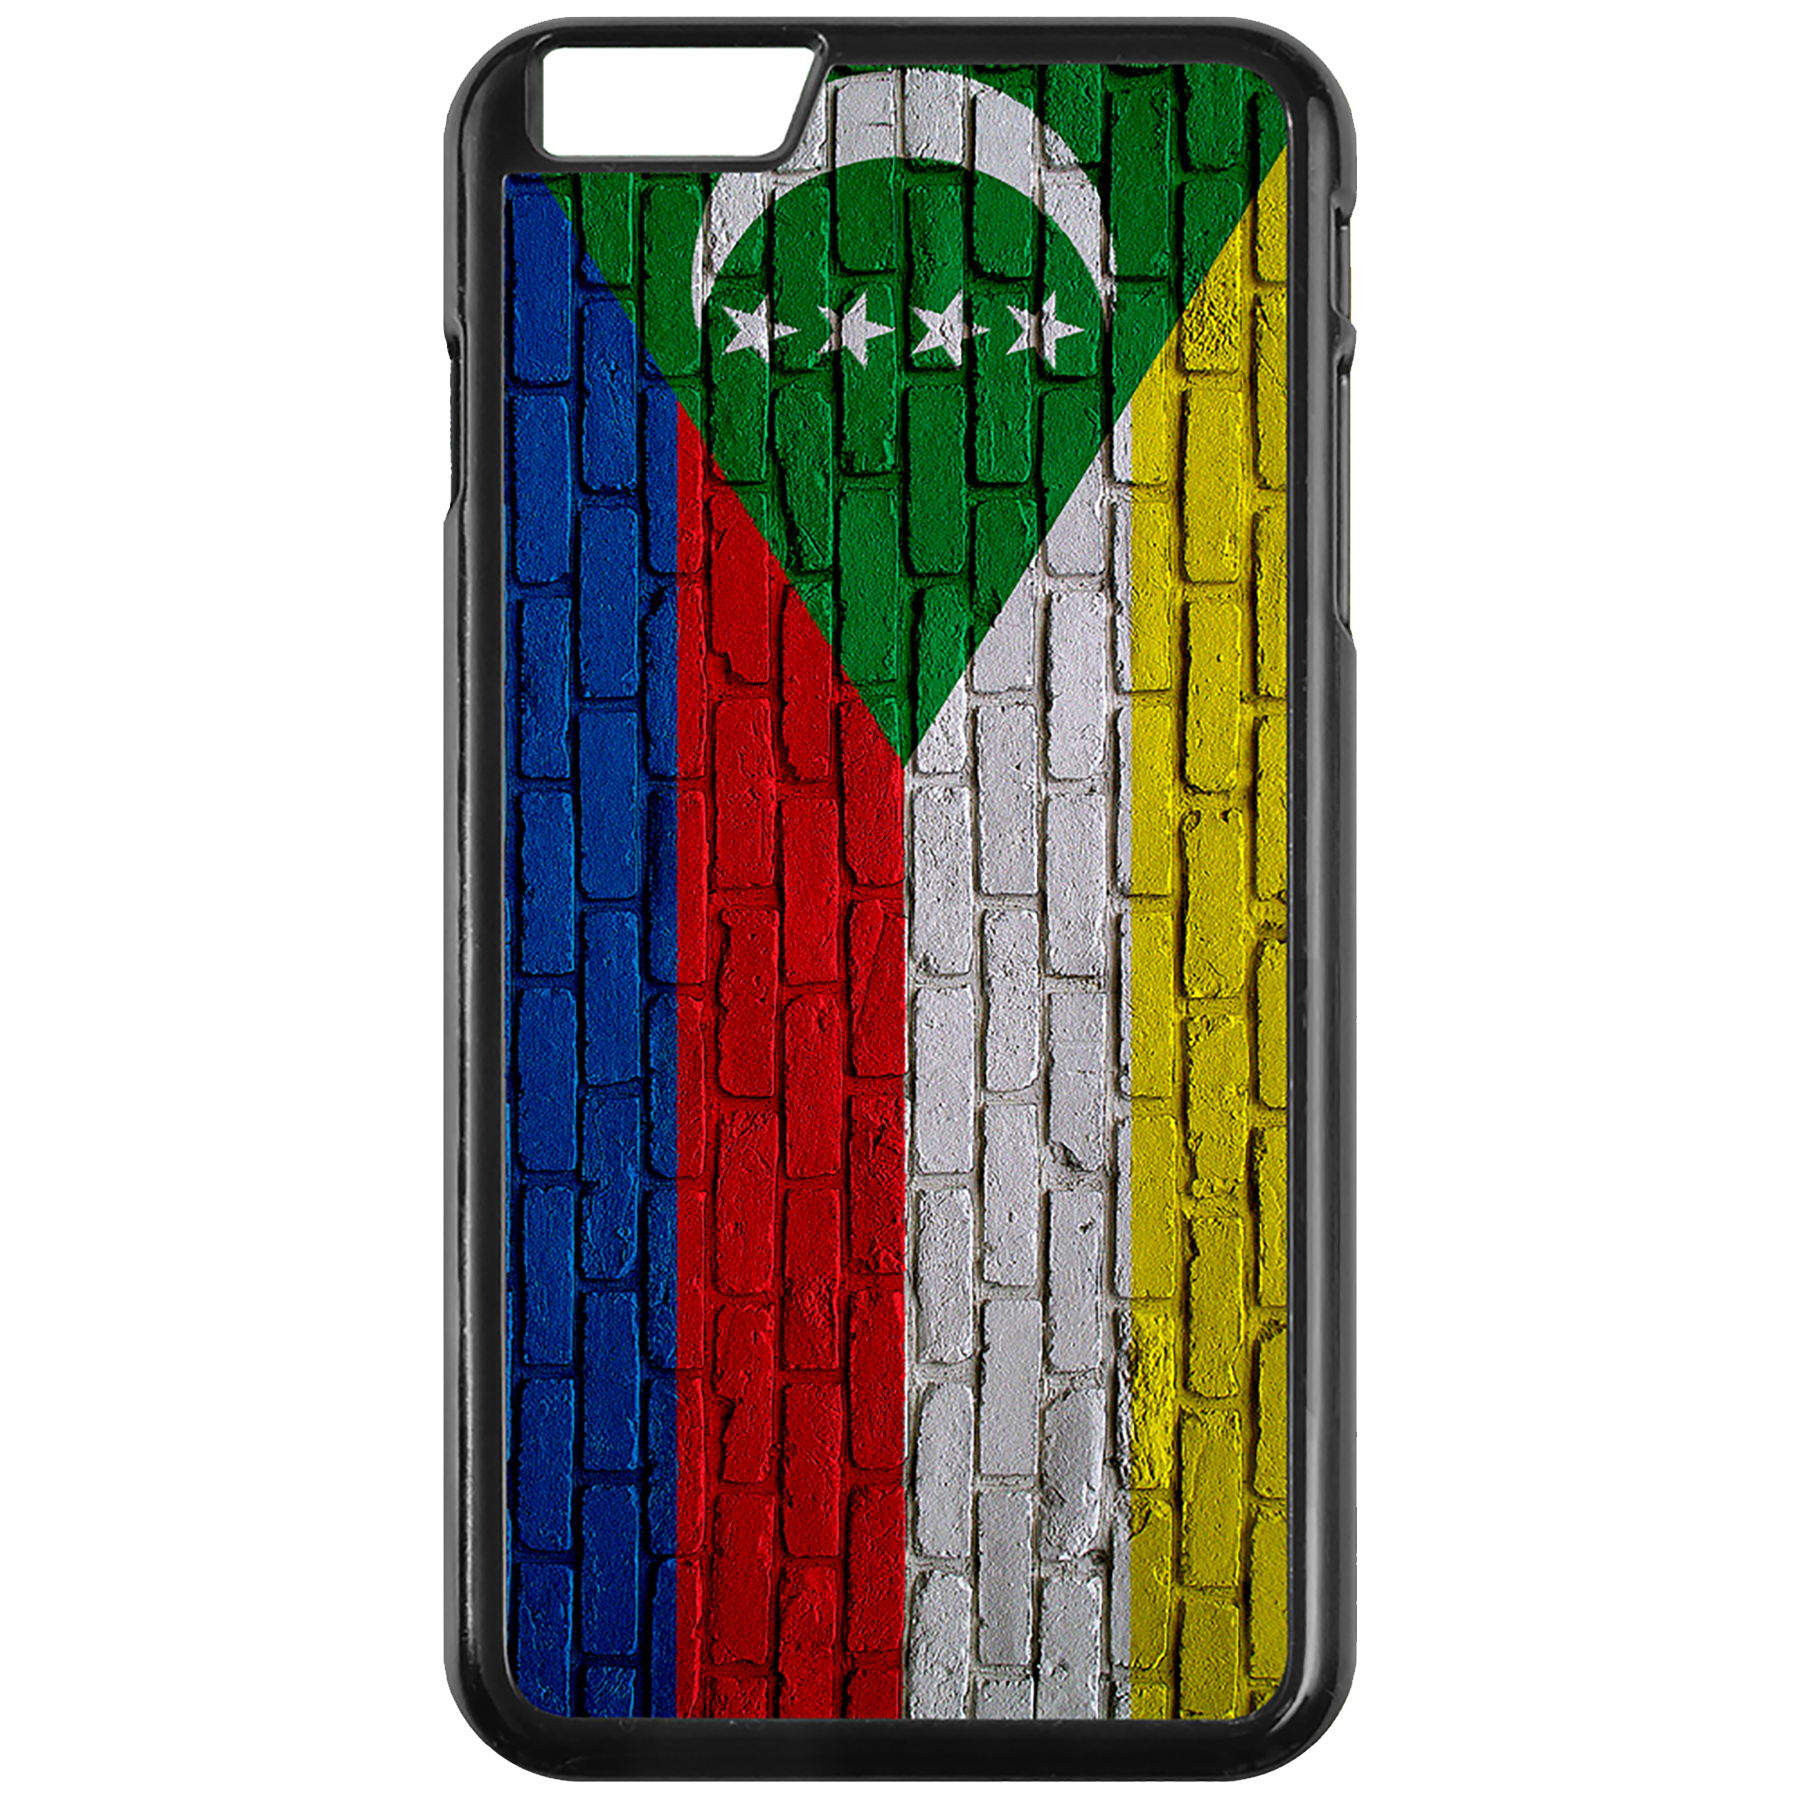 Apple-iPhone-Case-with-Flag-of-Comoros-Comorian-Many-Design-Options thumbnail 55